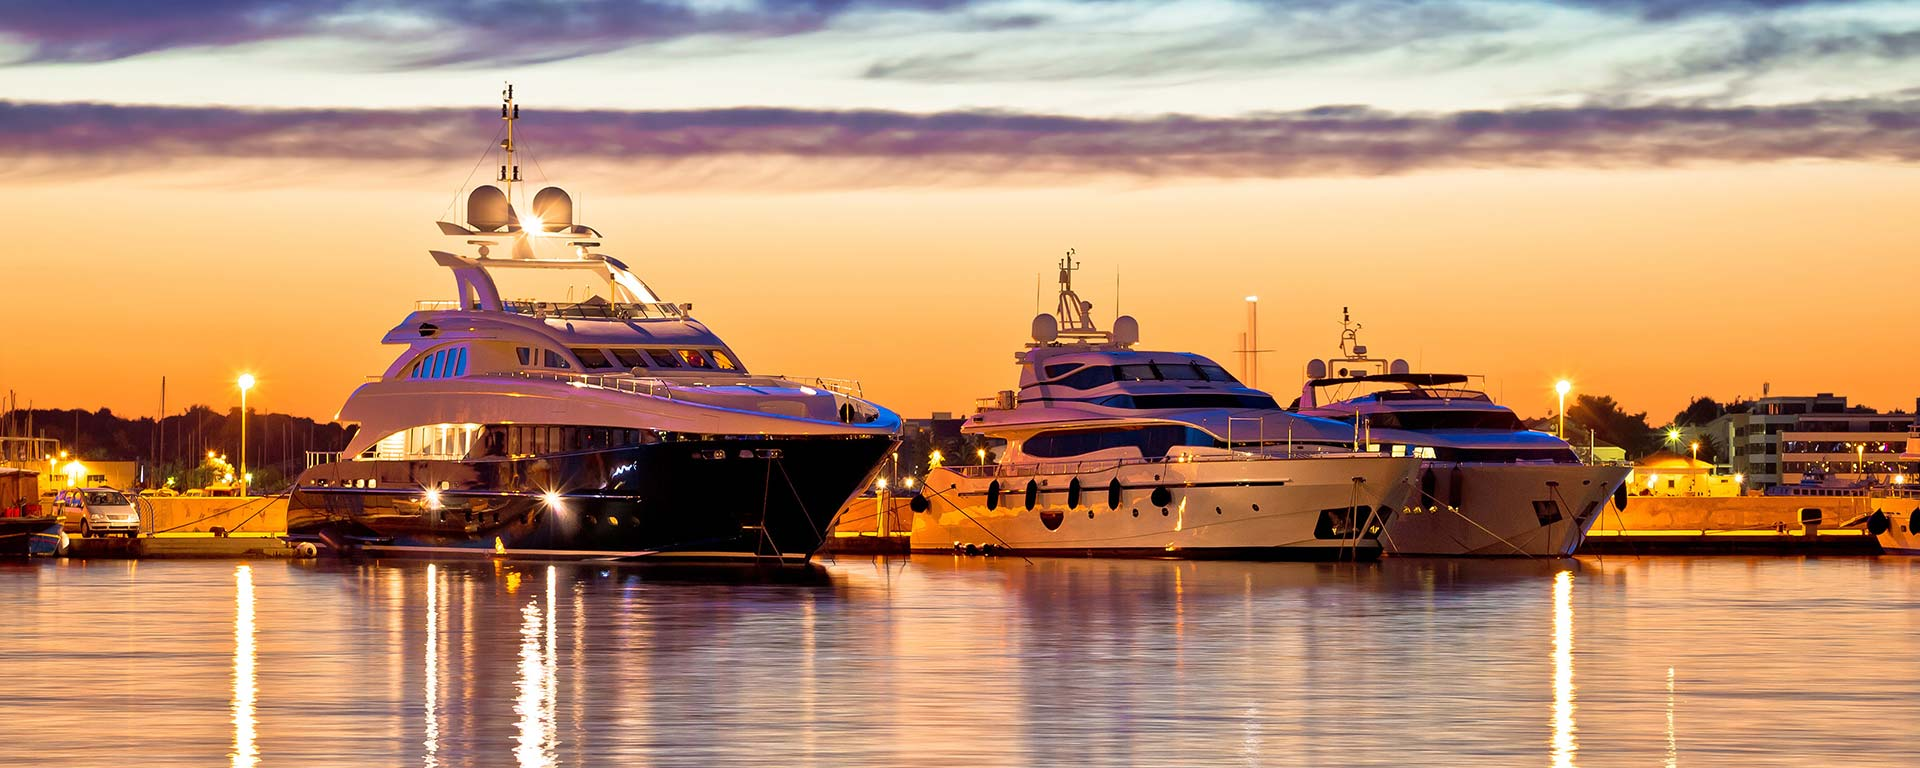 Luxury Yachts under the sunset